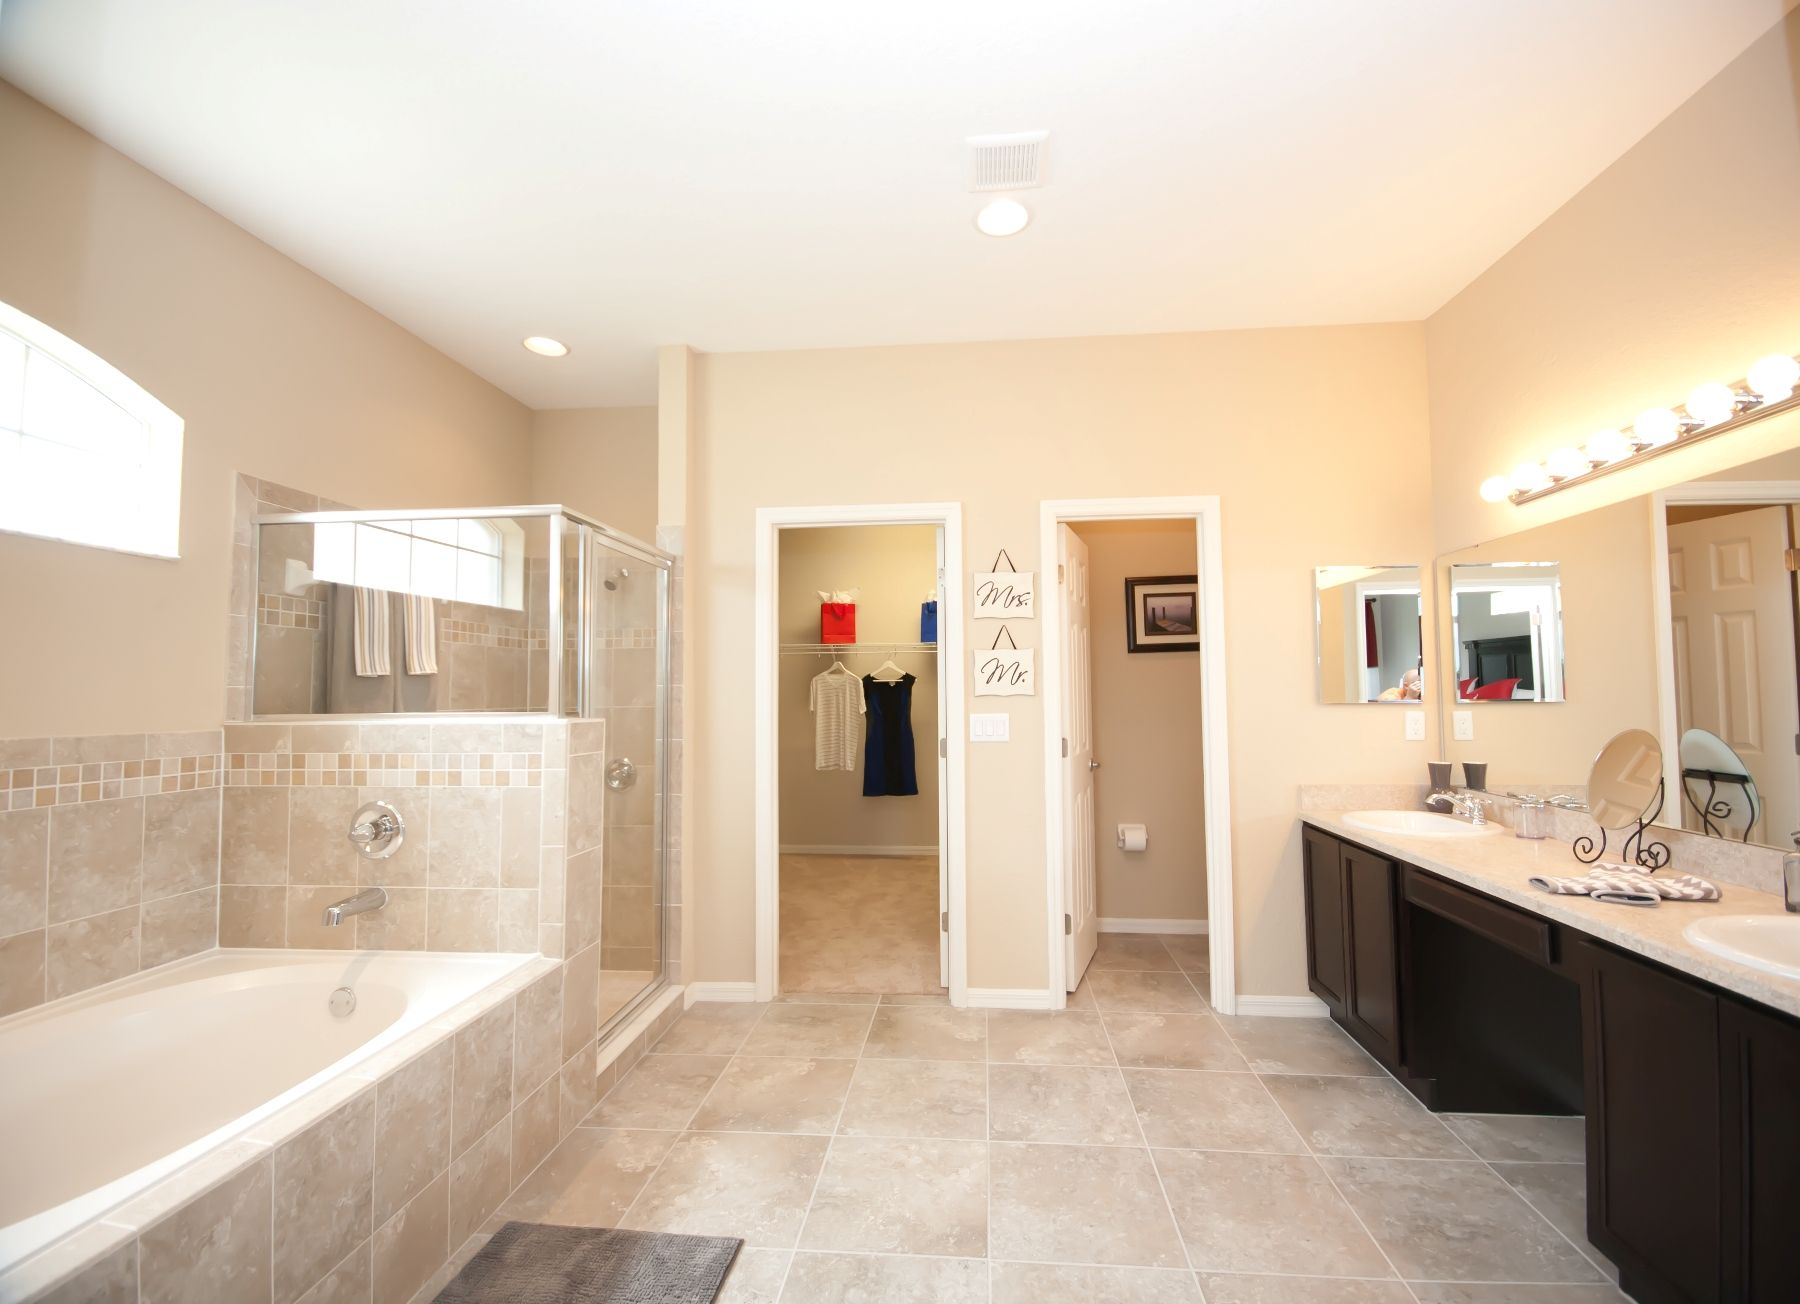 Great lighting open space and warm neutral colors make for Bathroom models images